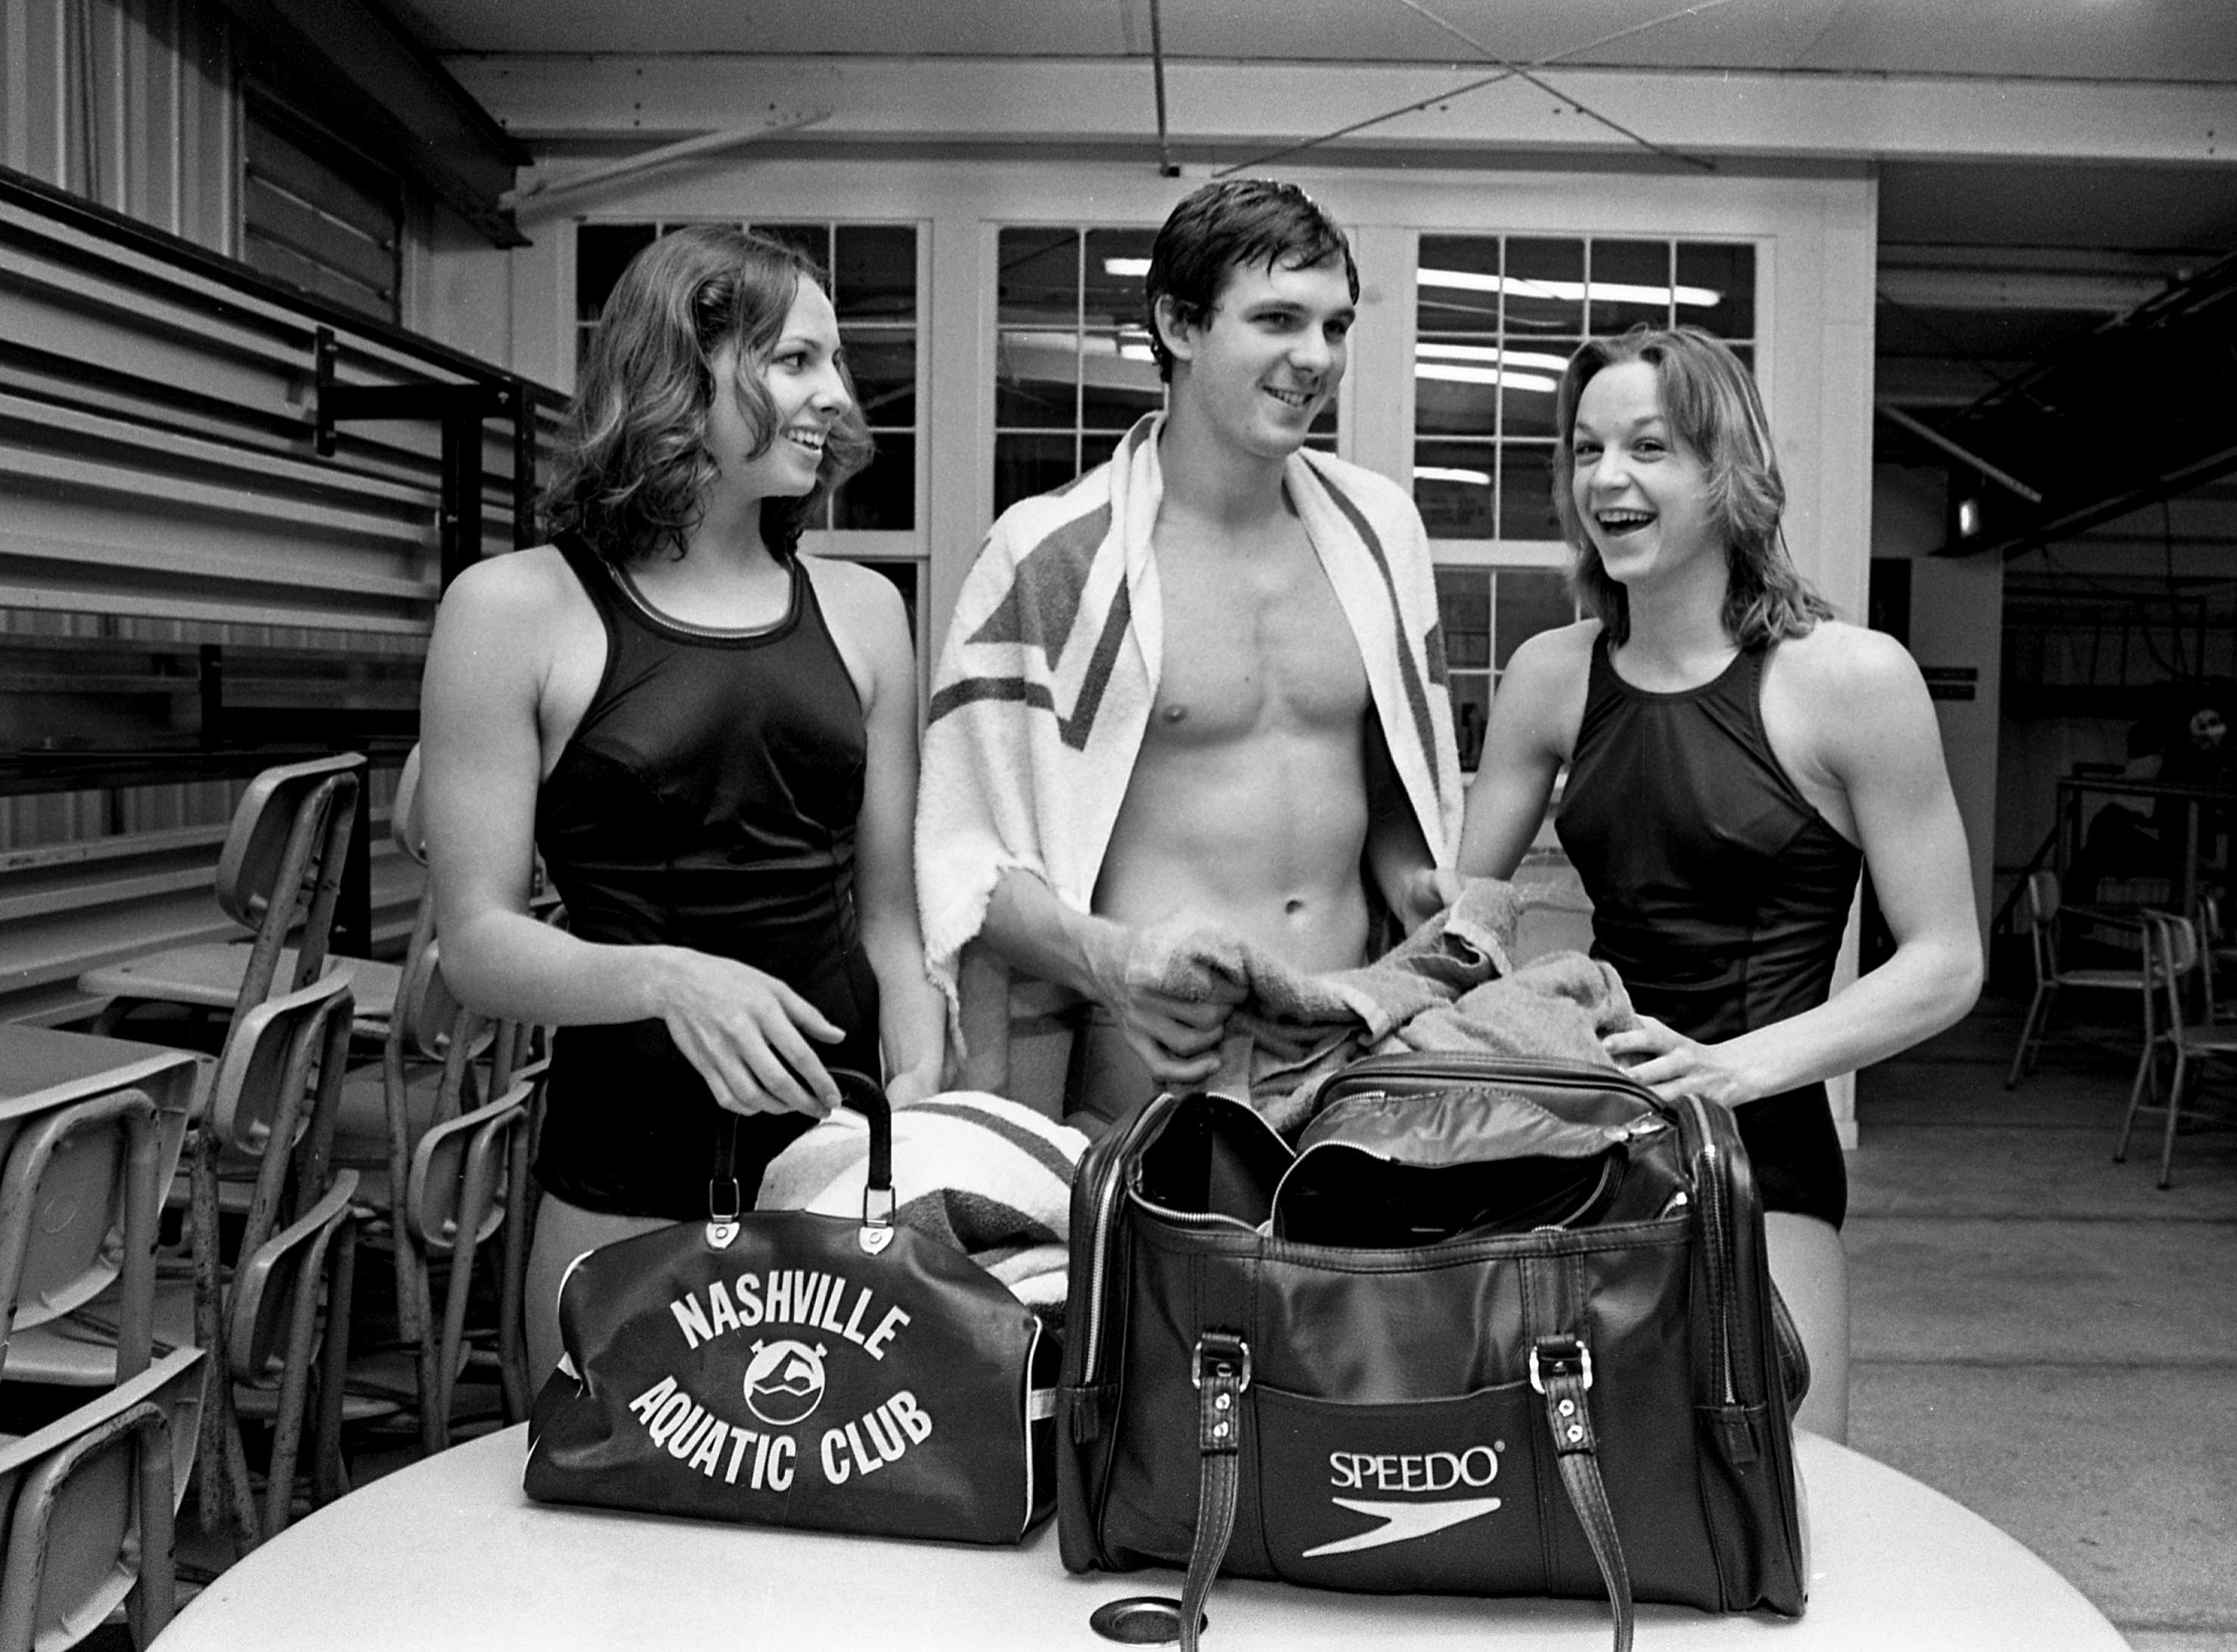 Swimmers Macie Phillips, left, Kent Martin and Andrea Cross of the Nashville Aquatic Club have their bags packed at the club's pool April 6, 1979. The trio with 11 other club swimmers will be participating in the upcoming AAU Short Course National Championships in East Los Angeles.